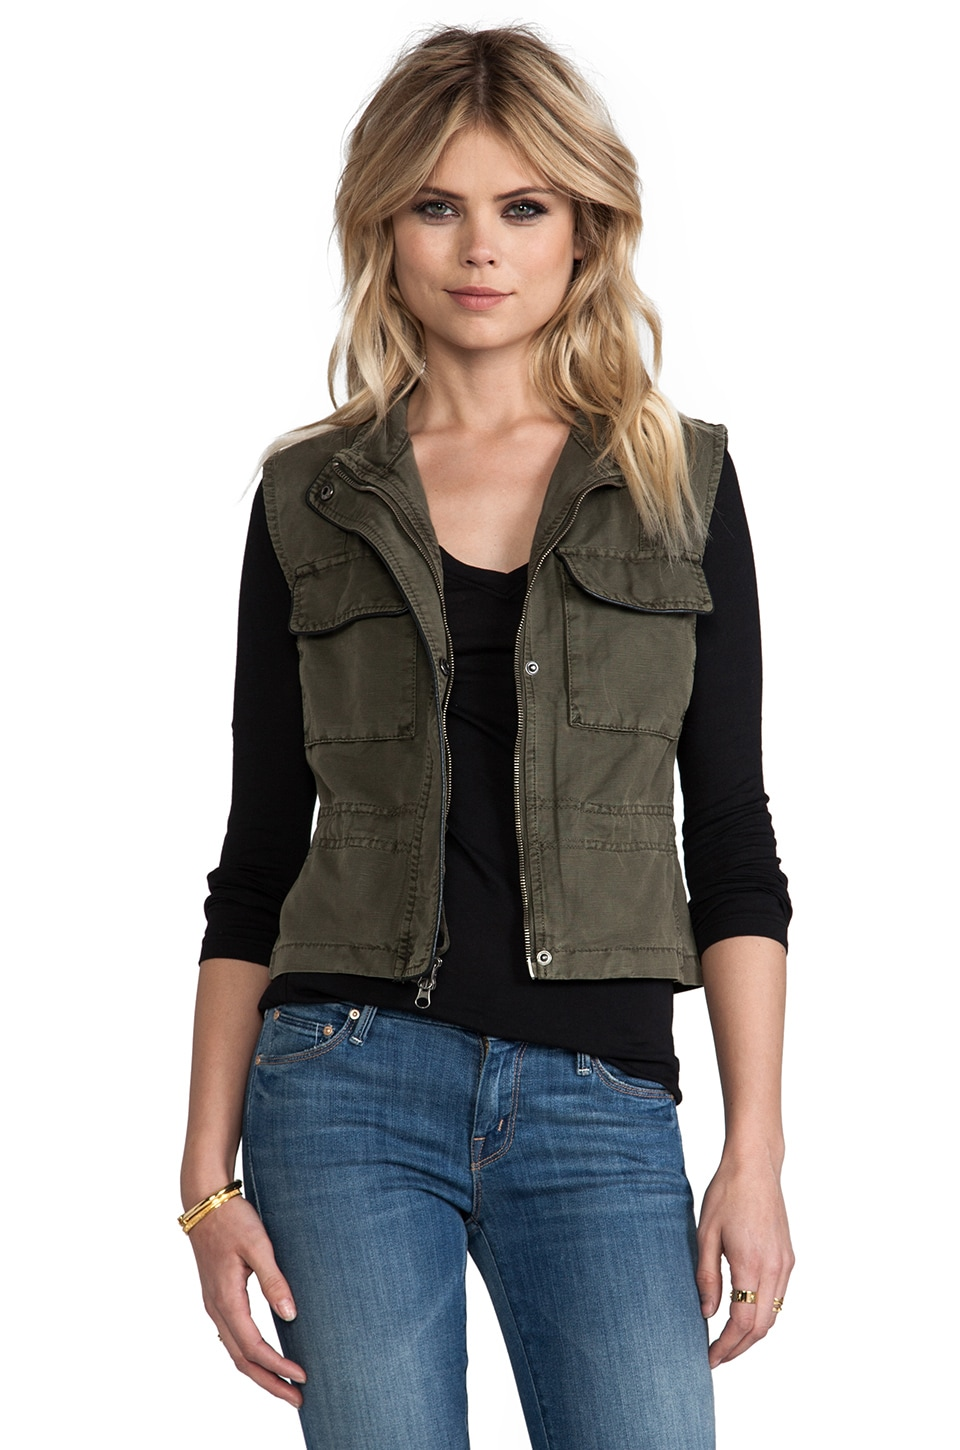 Sanctuary Crop Travel Vest in Legion